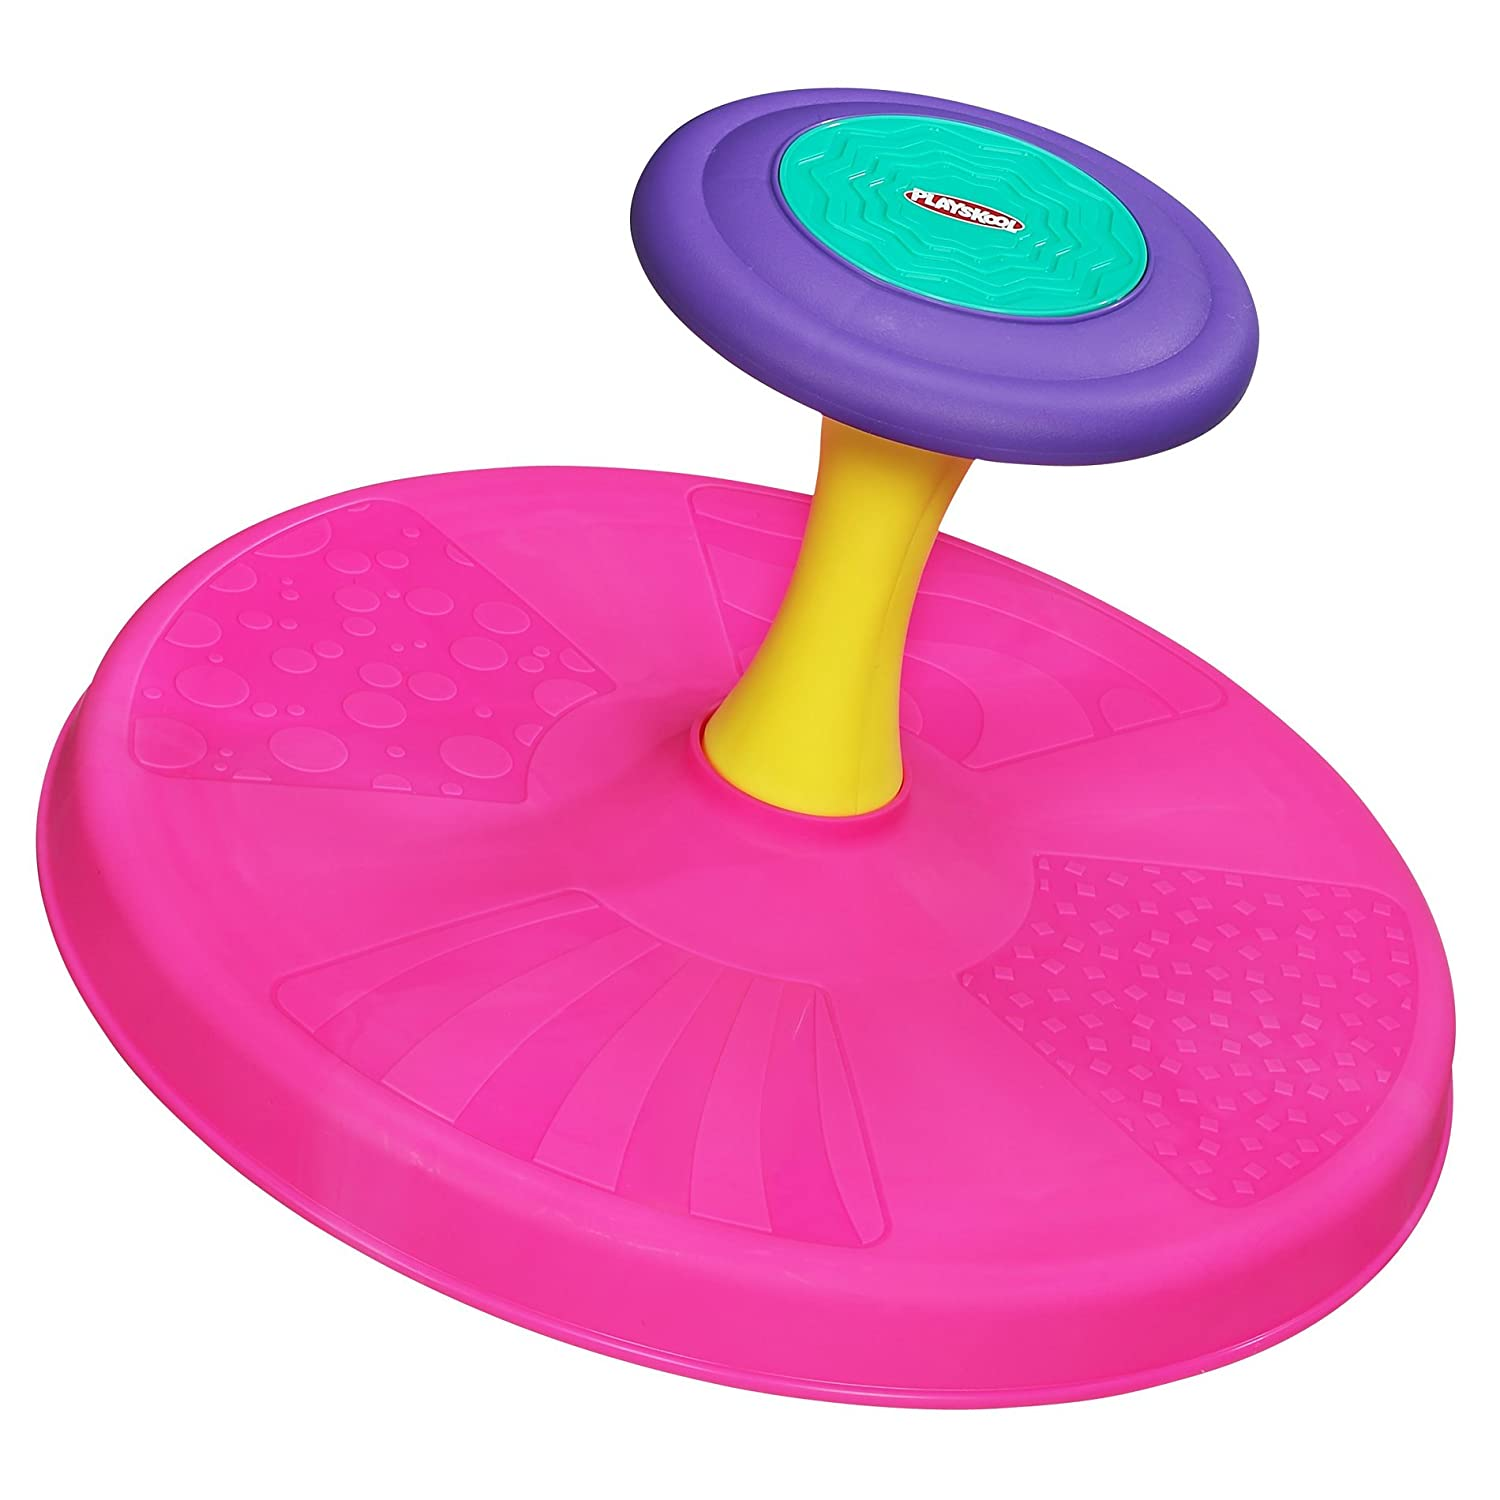 Image result for sit n spin